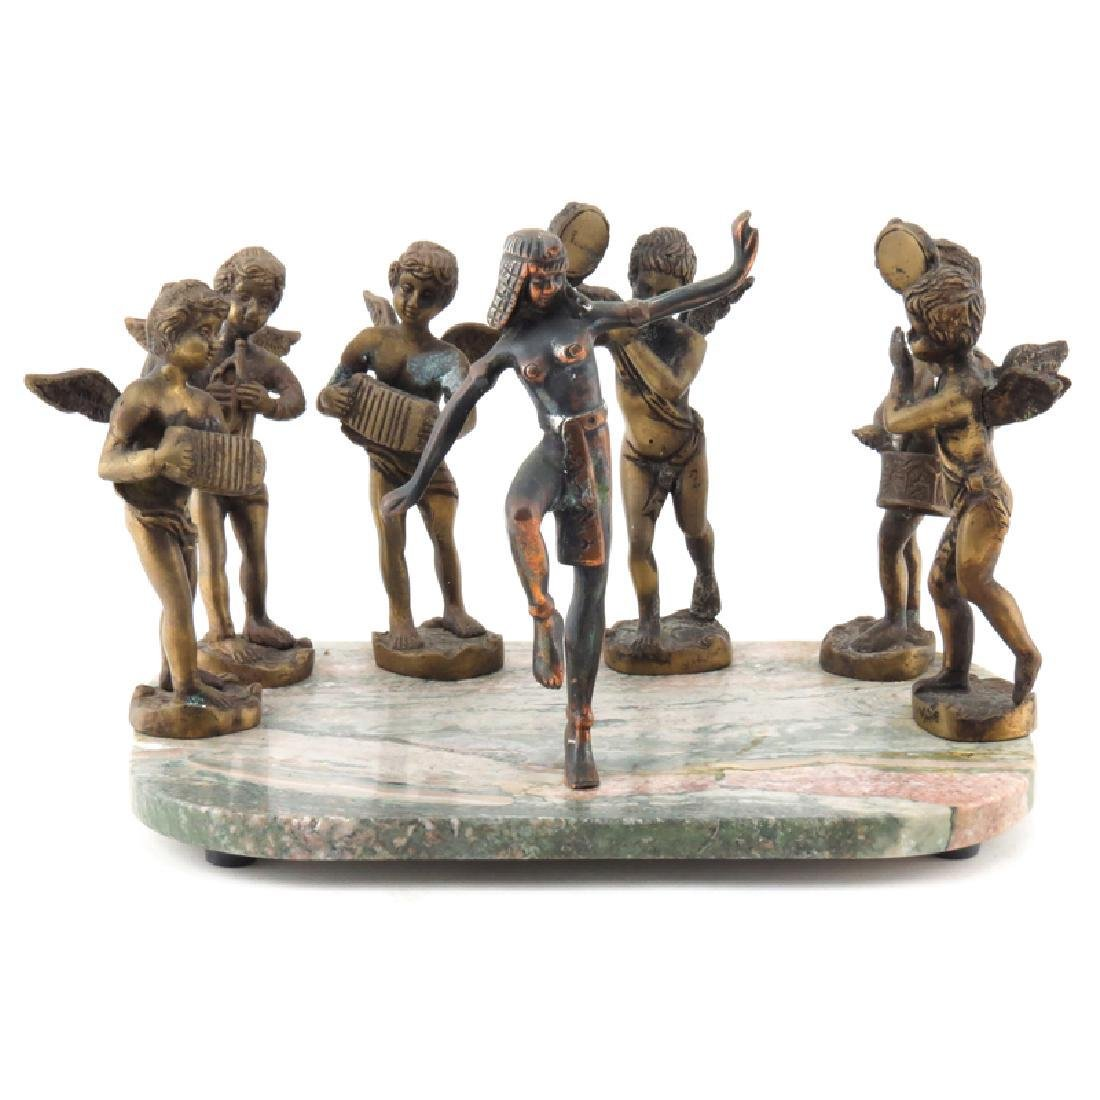 20th Century Bronze Figures on Marble Base. Depicts a